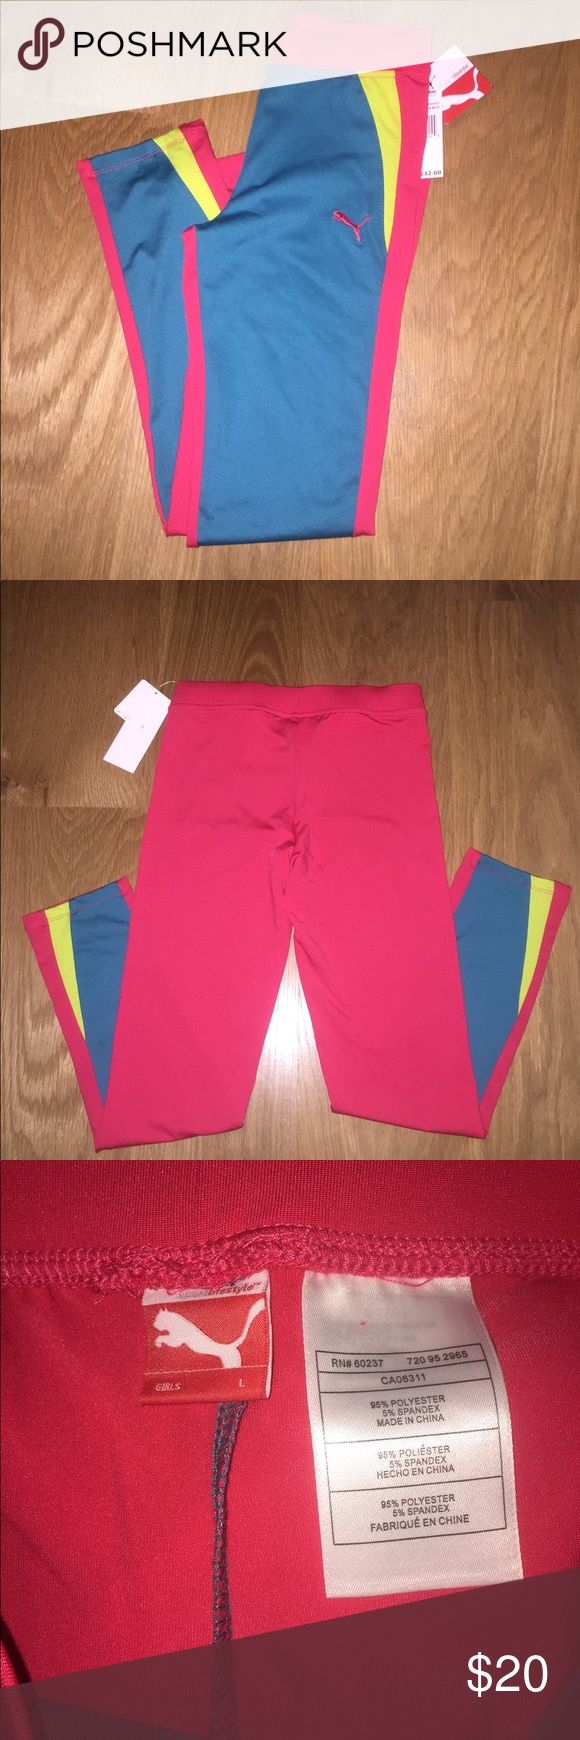 Puma Sport Leggings NEVER WORN. NEW WITH TAGS. very comfy perfect for any sport or running activity. They are a girls Large but I wear a size small in these type of pants and they fit me perfect. Puma Pants Leggings